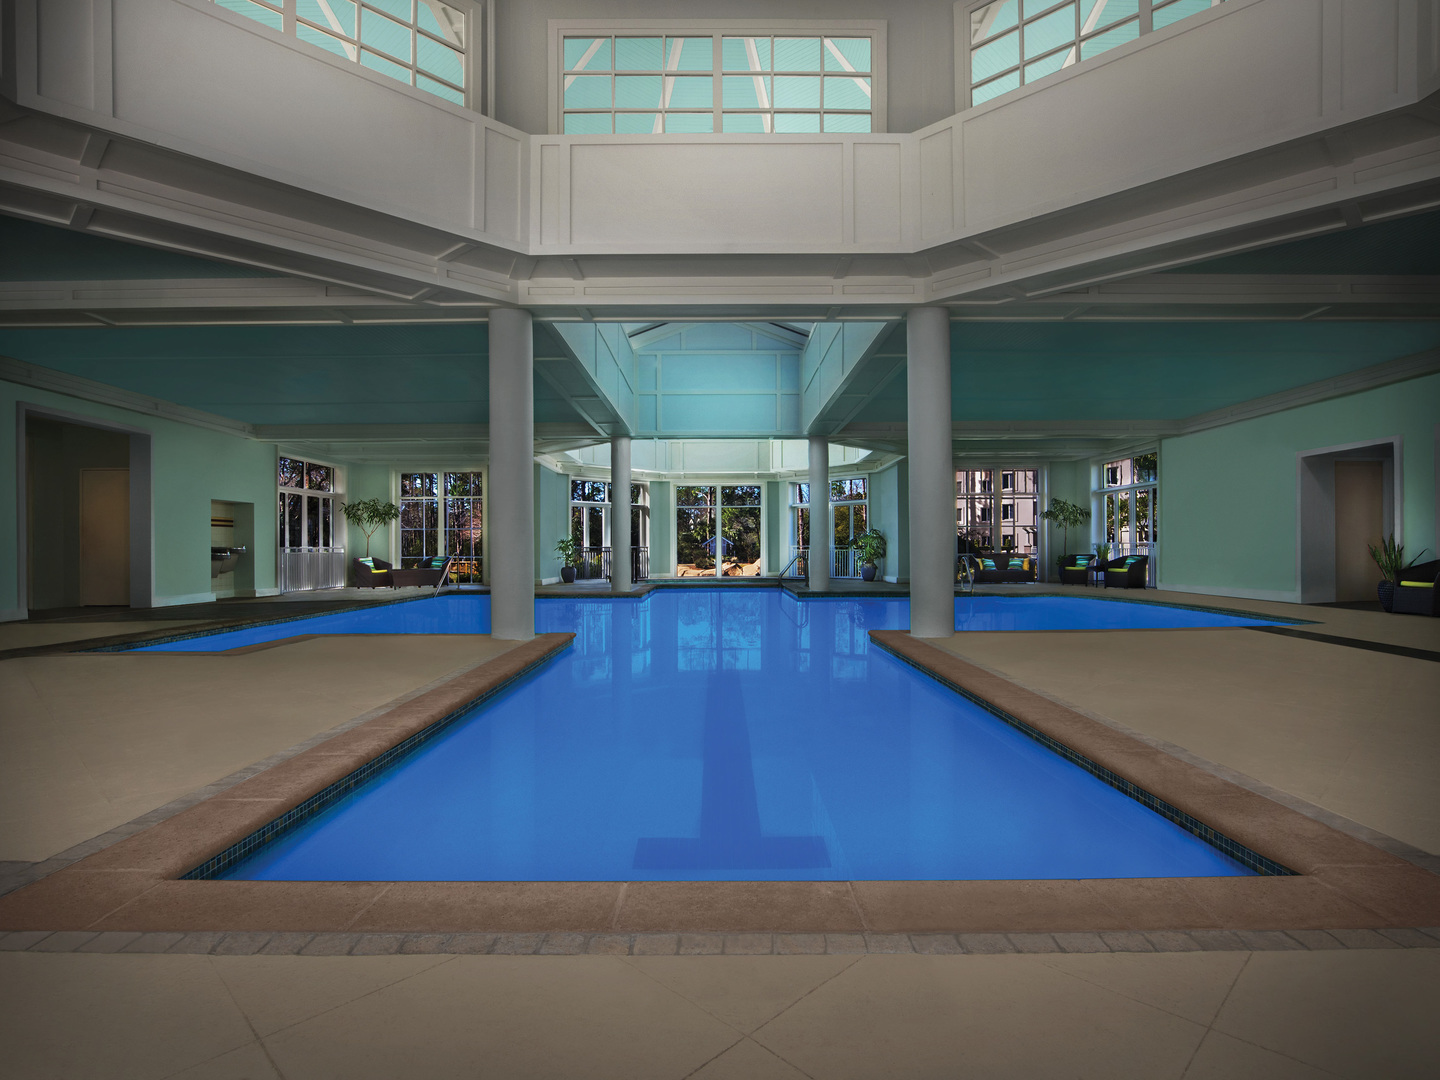 Marriott's SurfWatch<span class='trademark'>®</span> Indoor Pool. Marriott's SurfWatch<span class='trademark'>®</span> is located in Hilton Head Island, South Carolina United States.